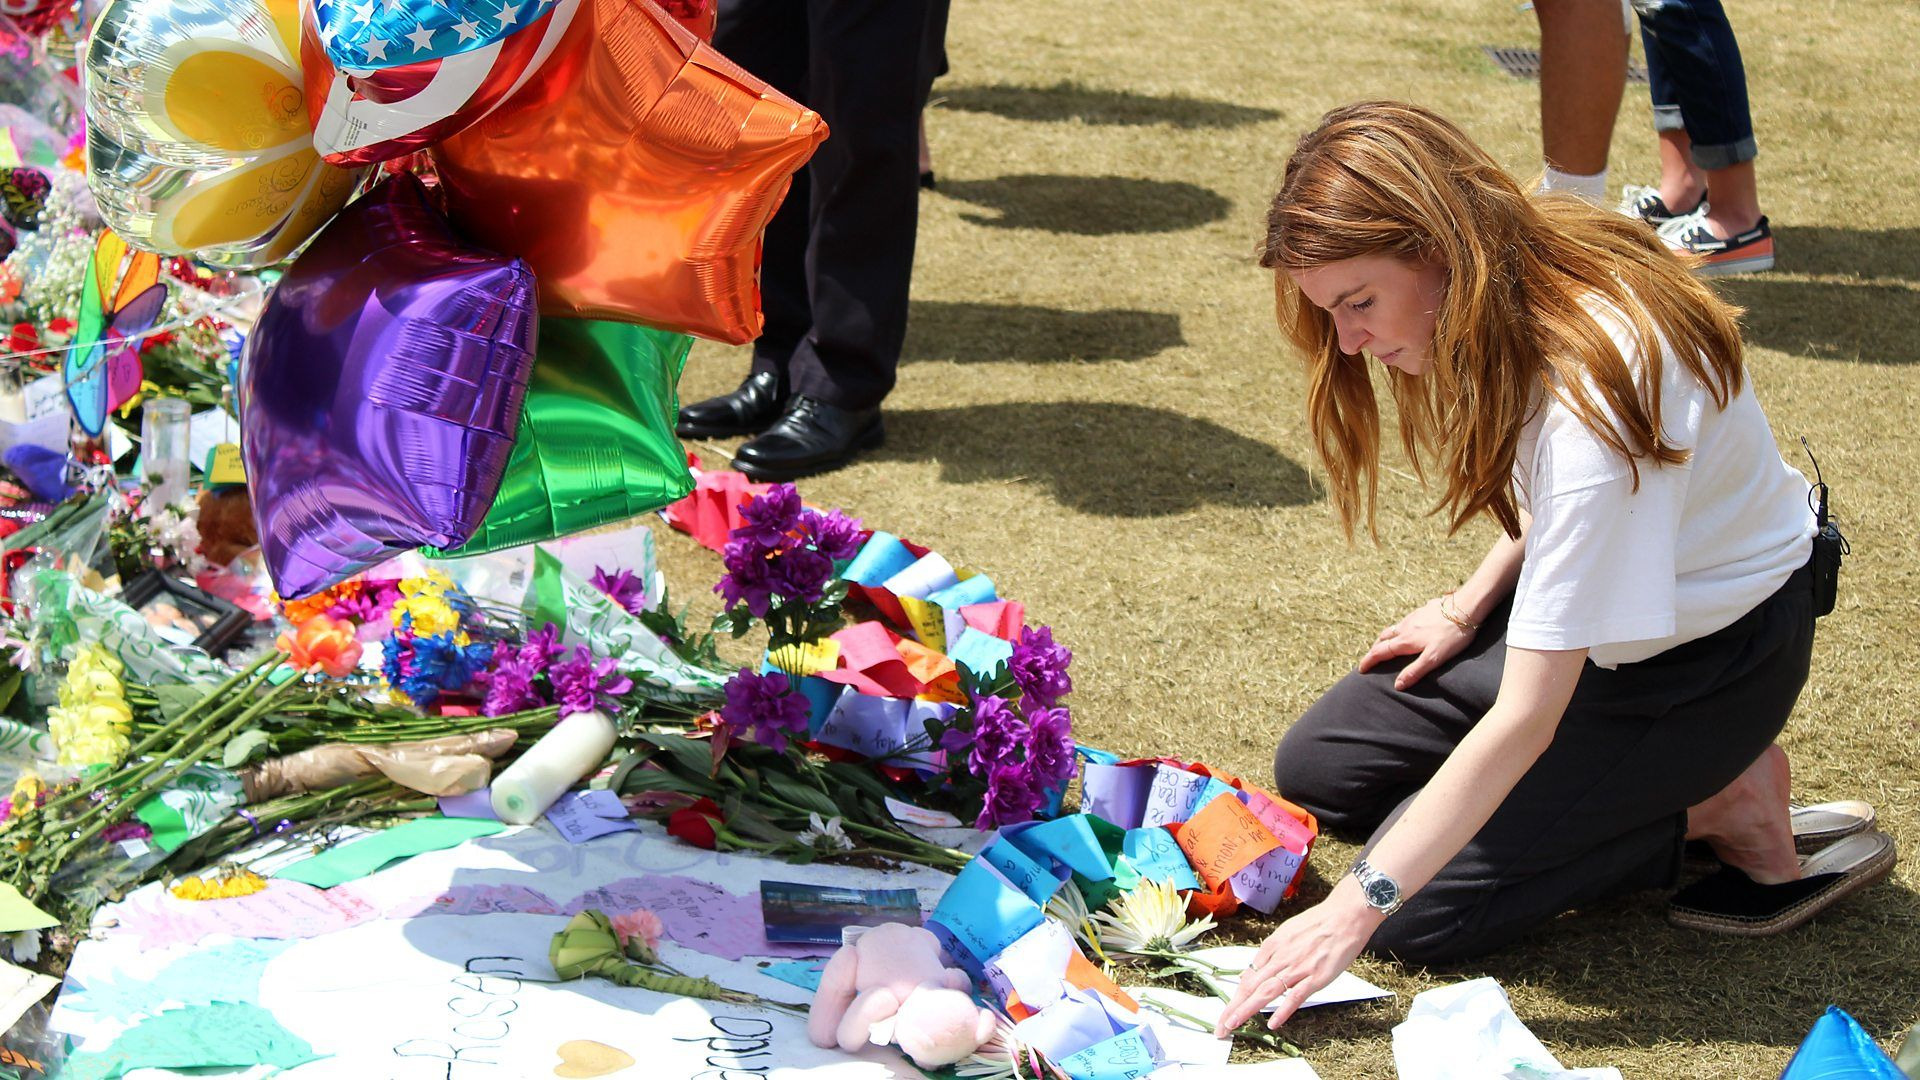 Stacey Dooley Investigates — s07 special-19 — Hate and Pride in Orlando